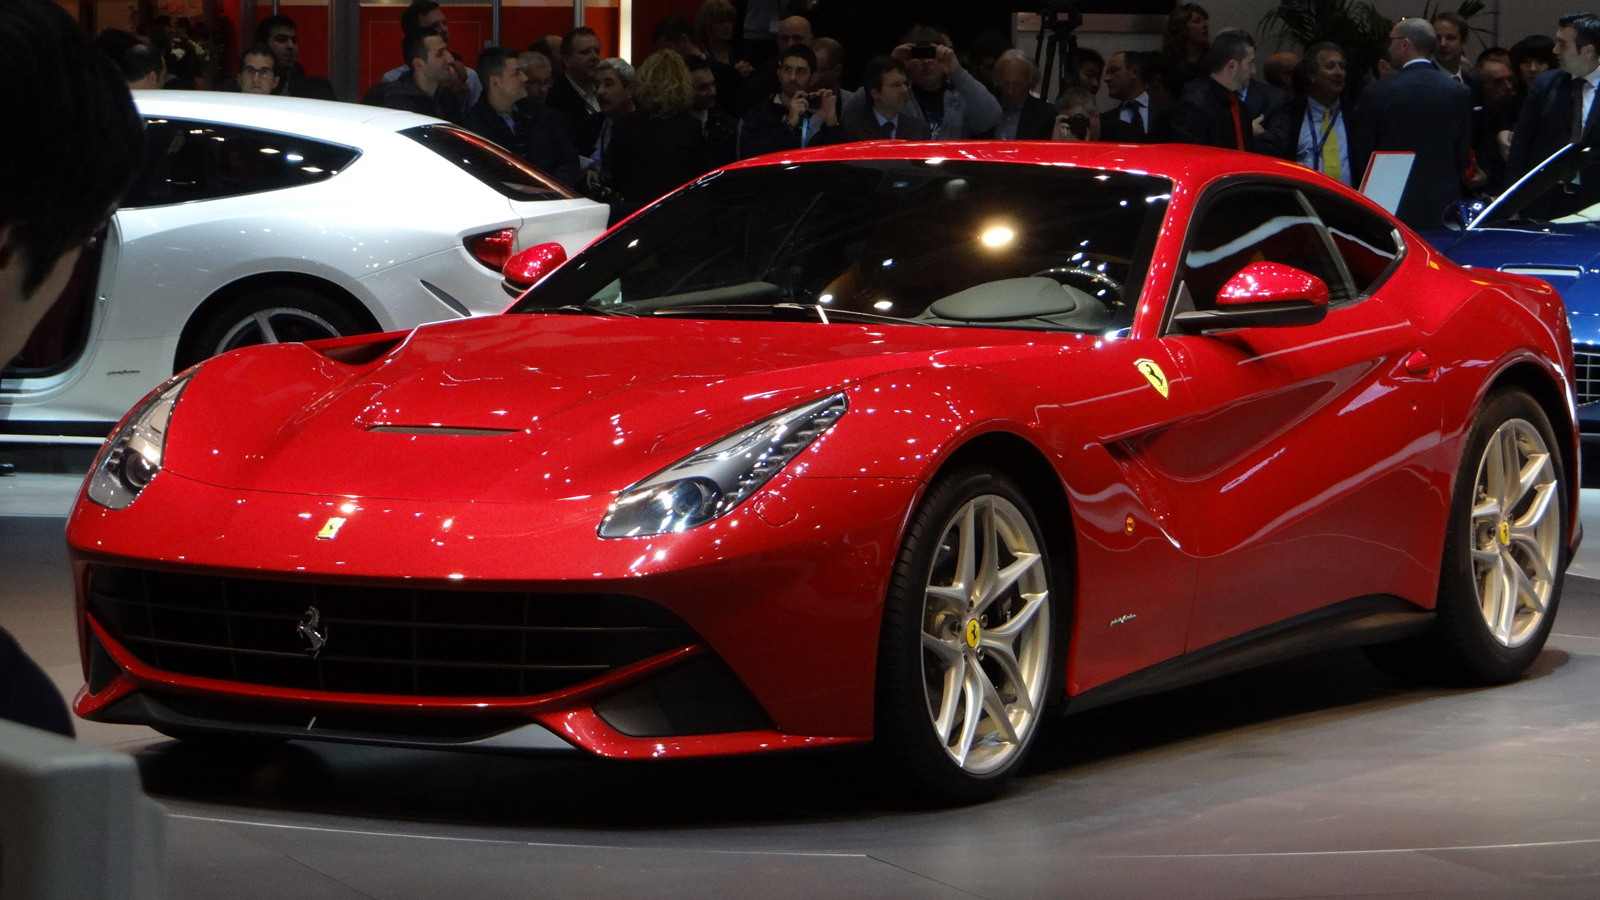 Ferrari F12 Berlinetta live photos